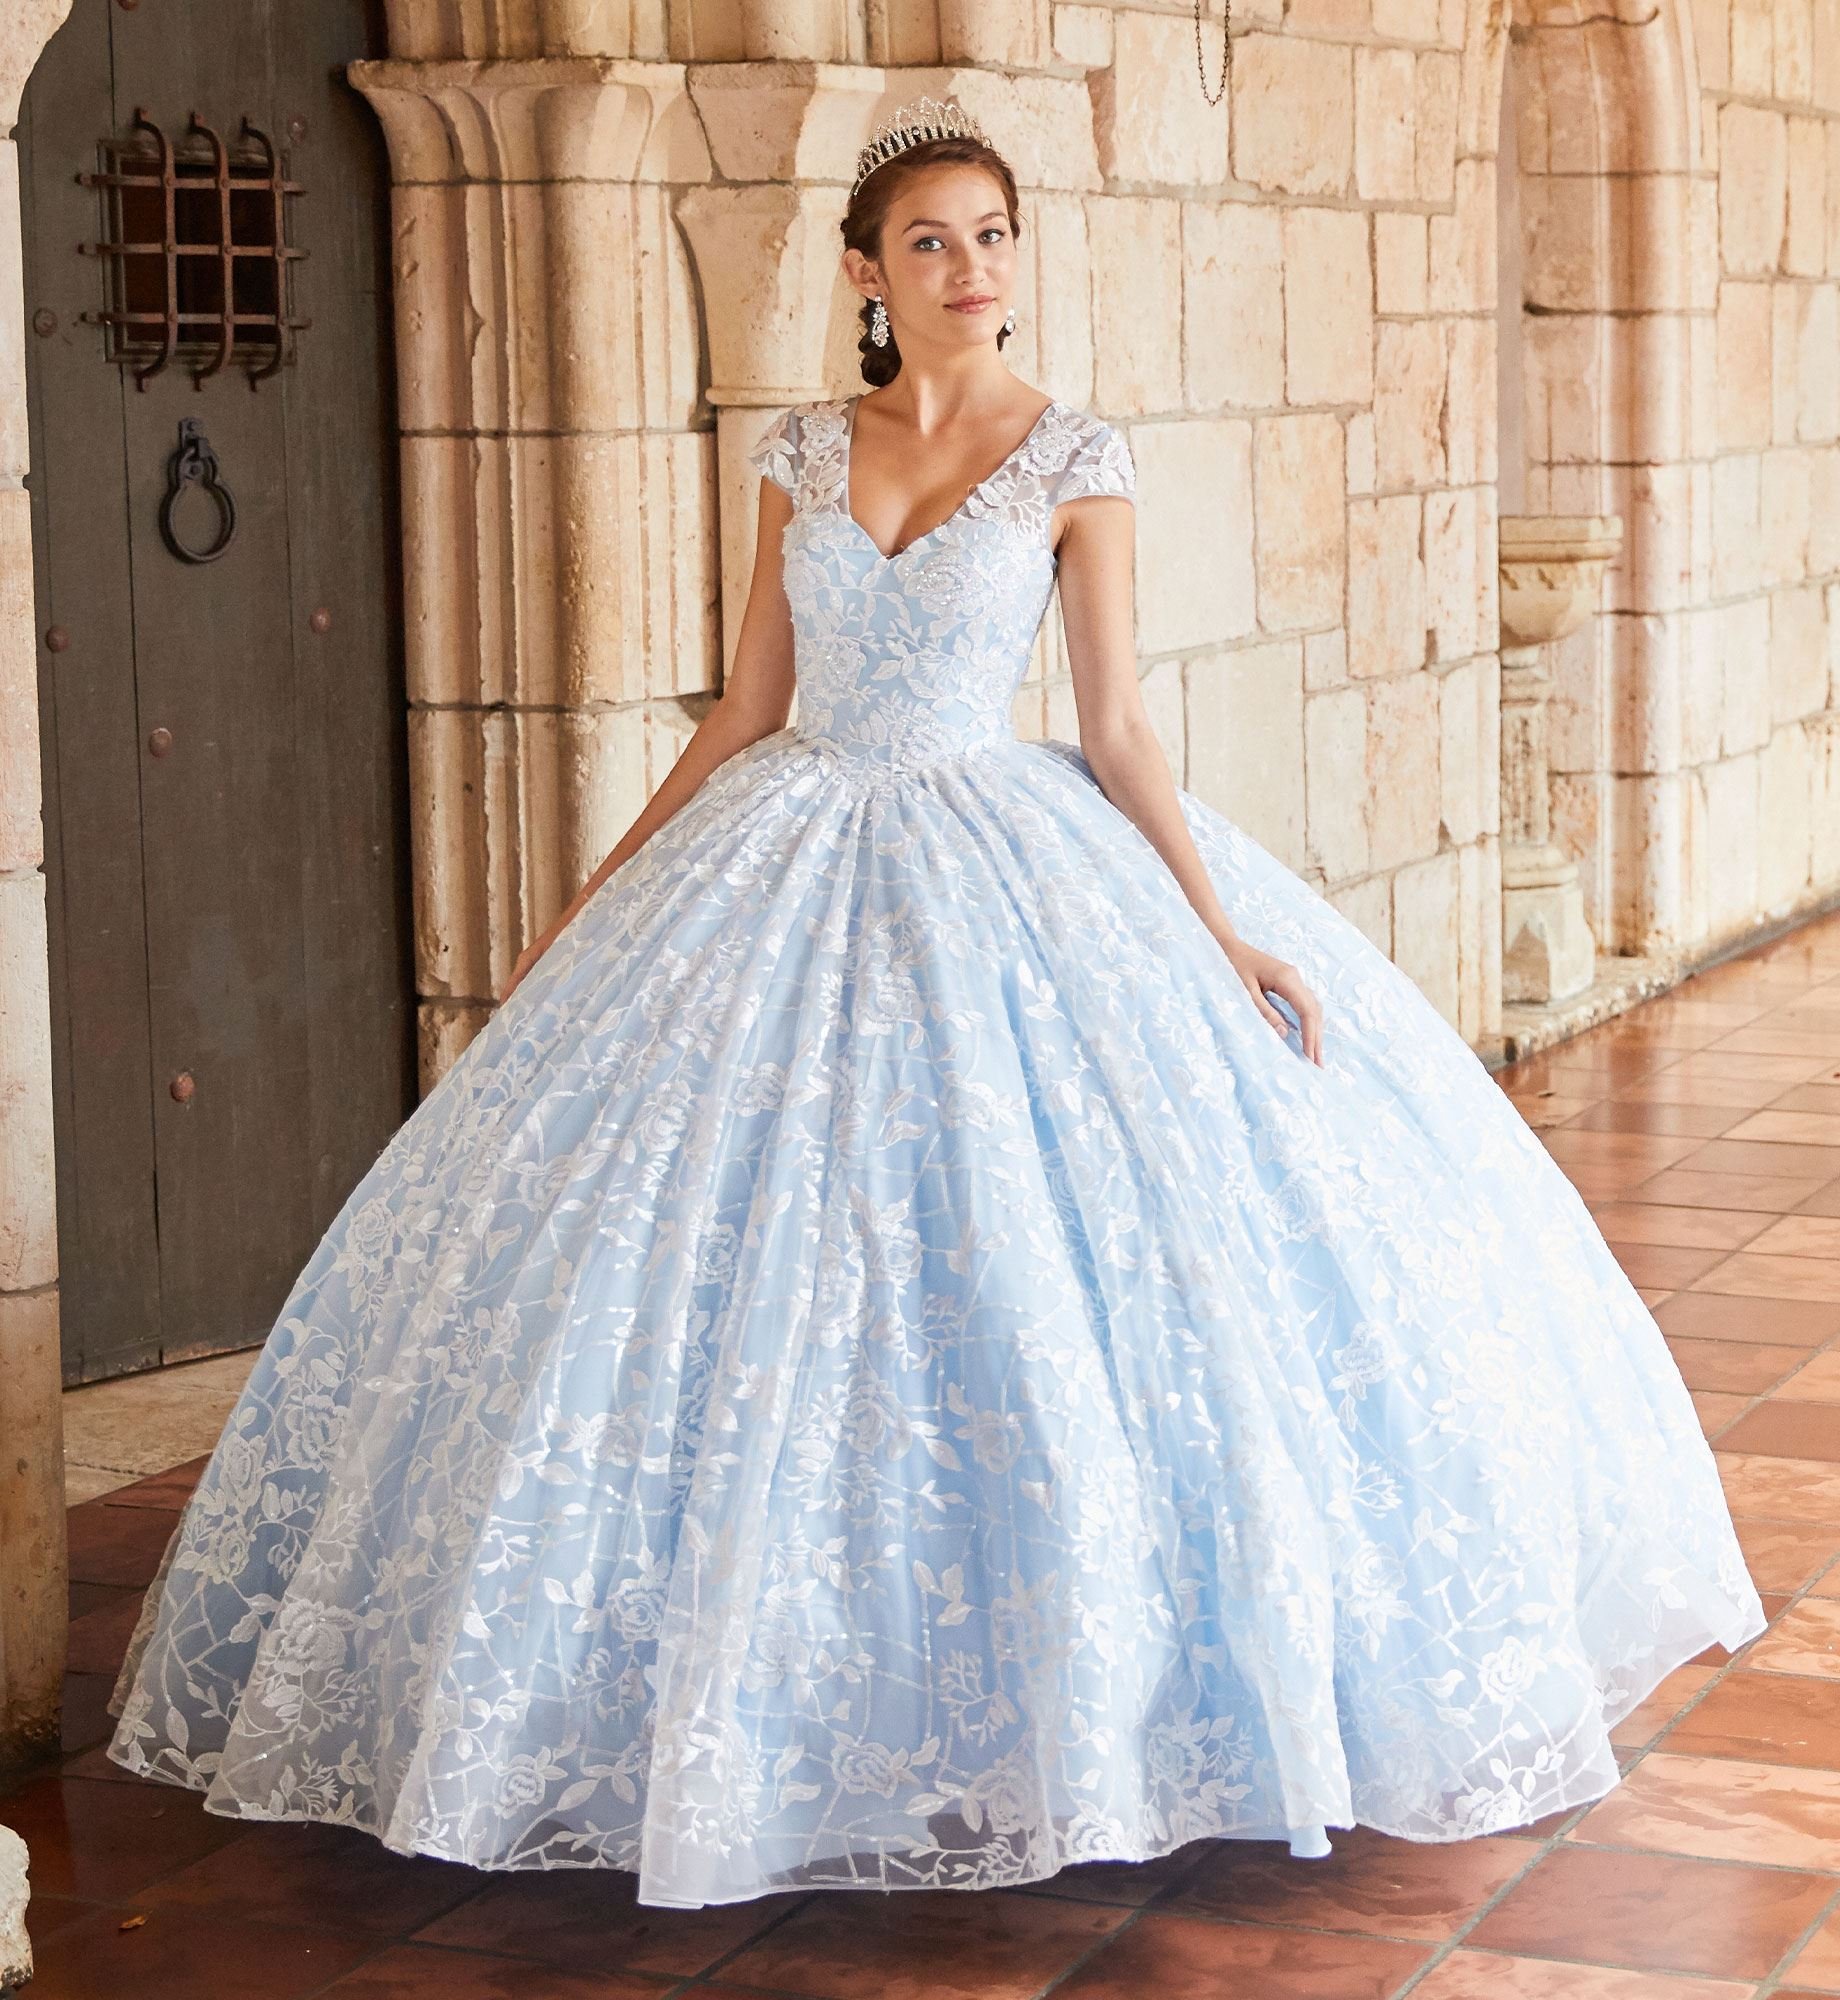 Brunette model in blue lace quinceañera dress